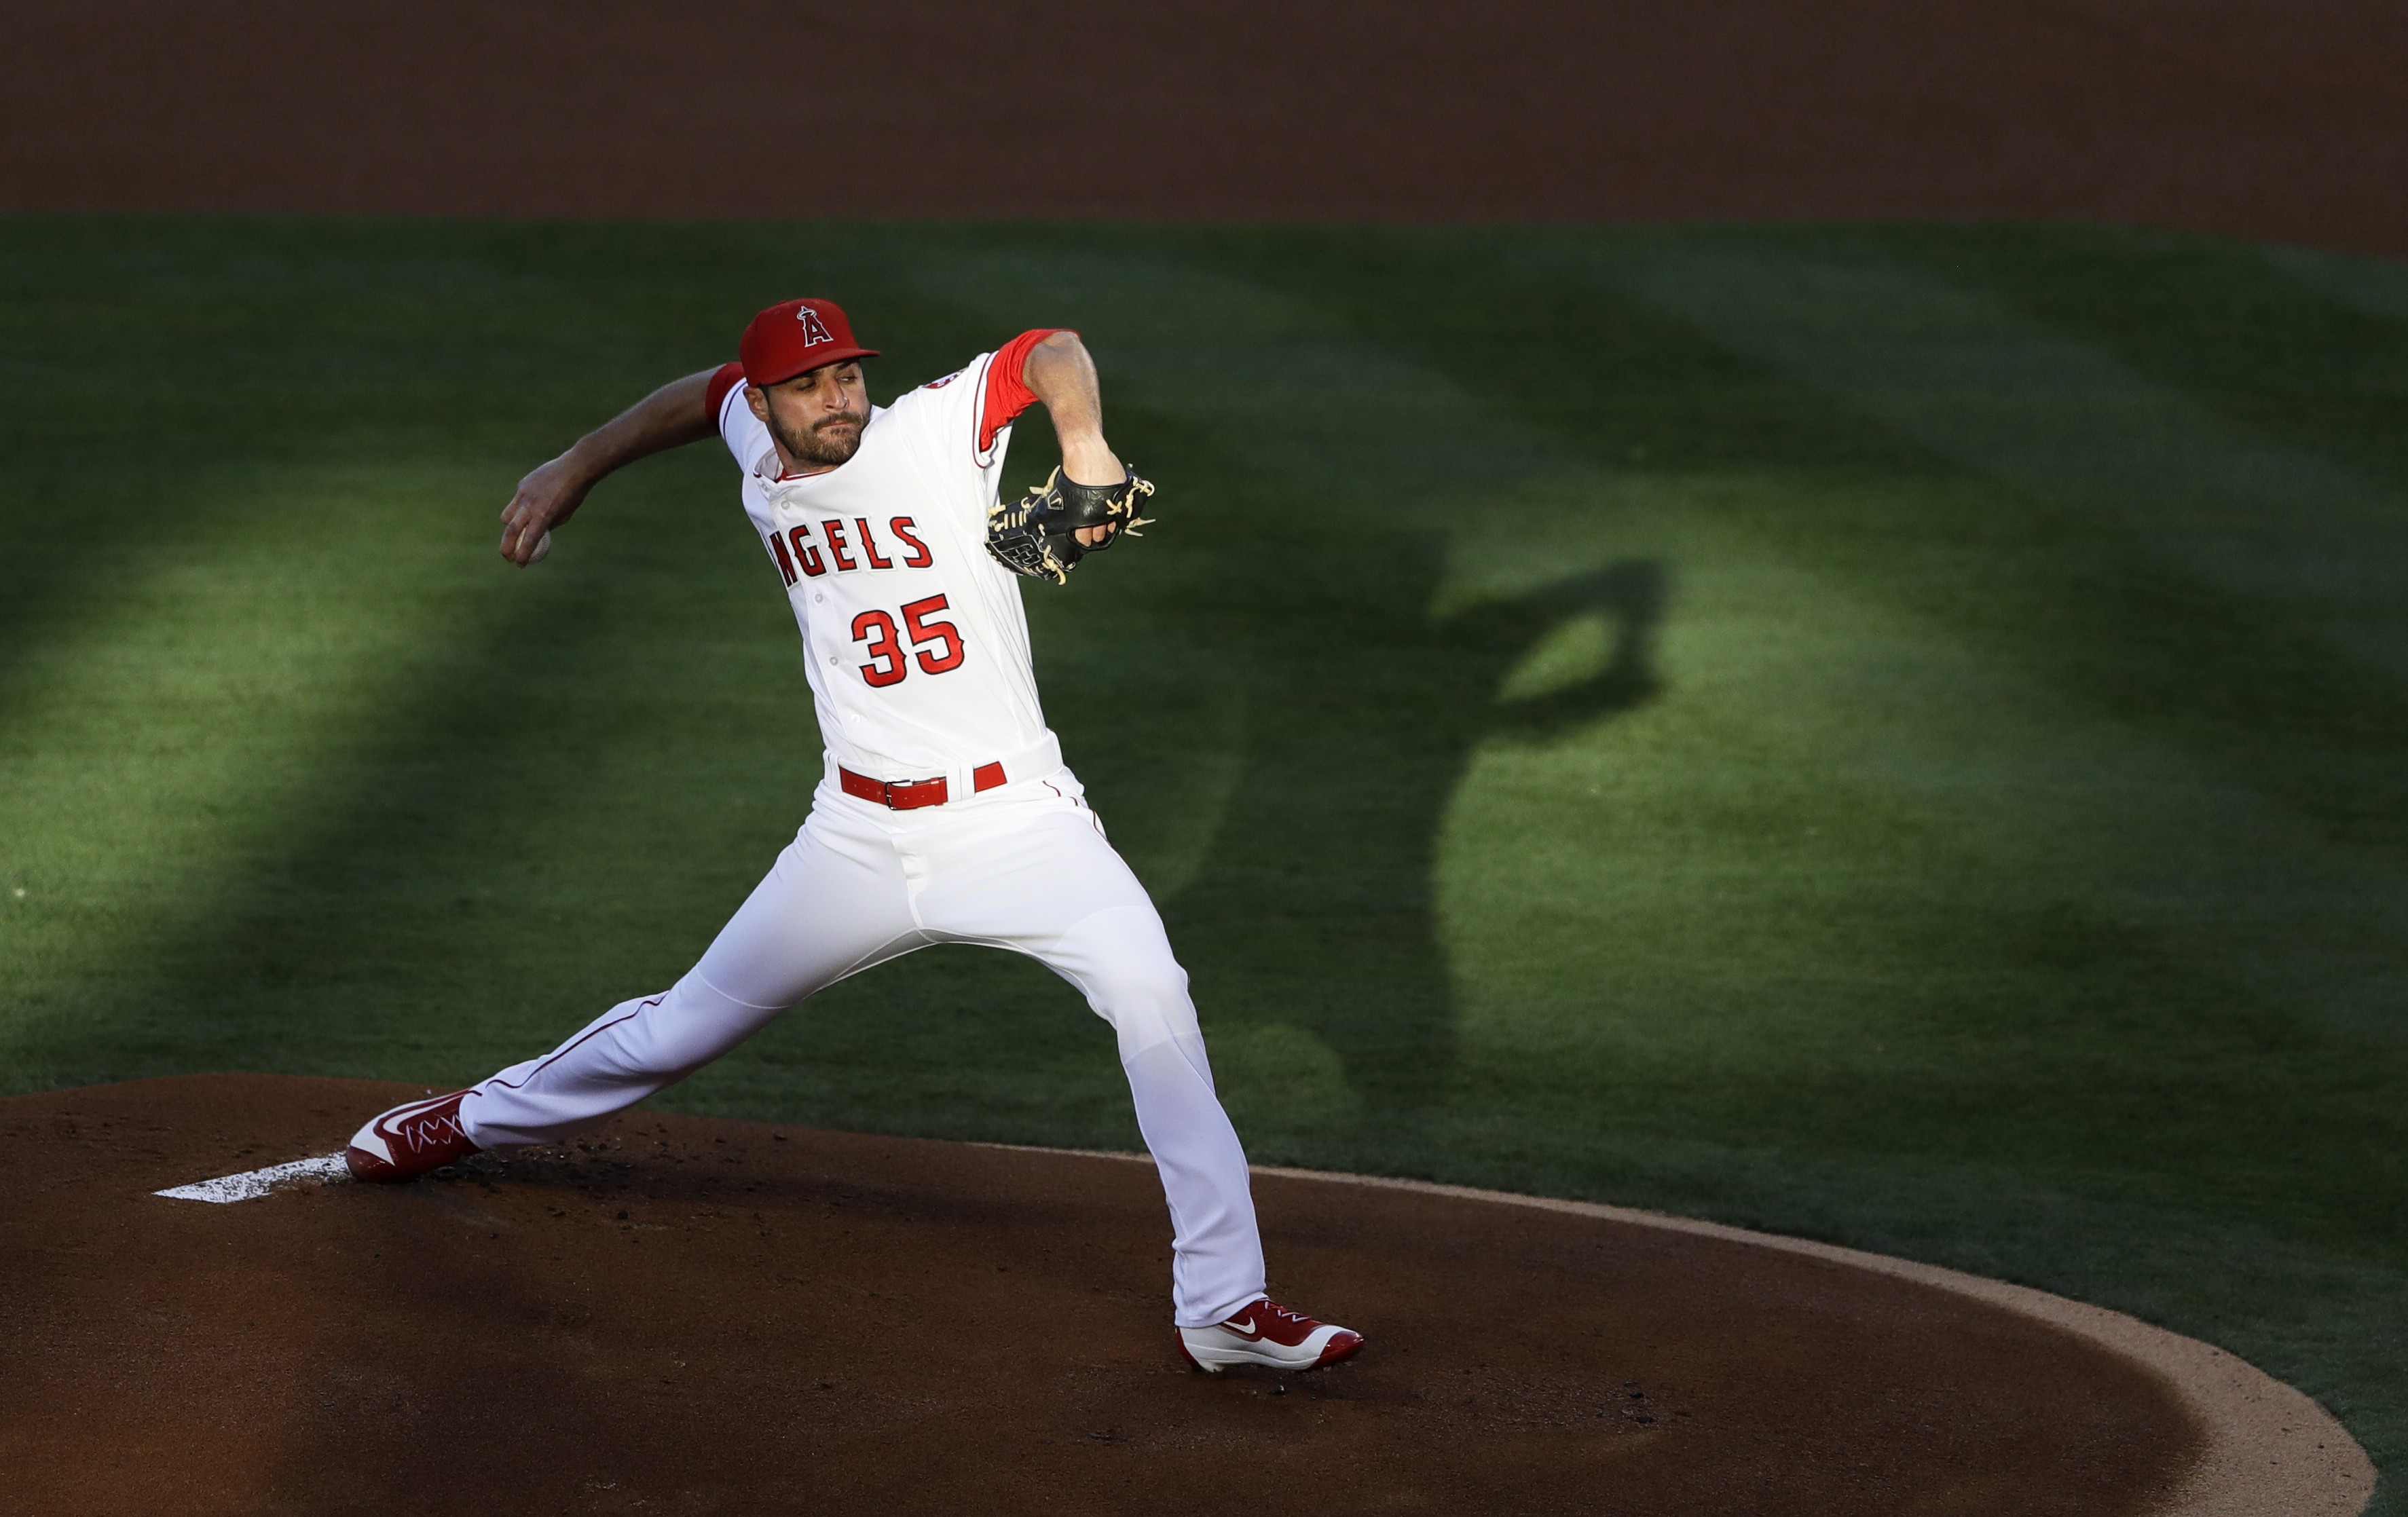 Los Angeles Angels starting pitcher Nick Tropeano works against a Texas Rangers batter during the first inning of a baseball game Monday, July 18, 2016, in Anaheim, Calif. (AP Photo/Gregory Bull)